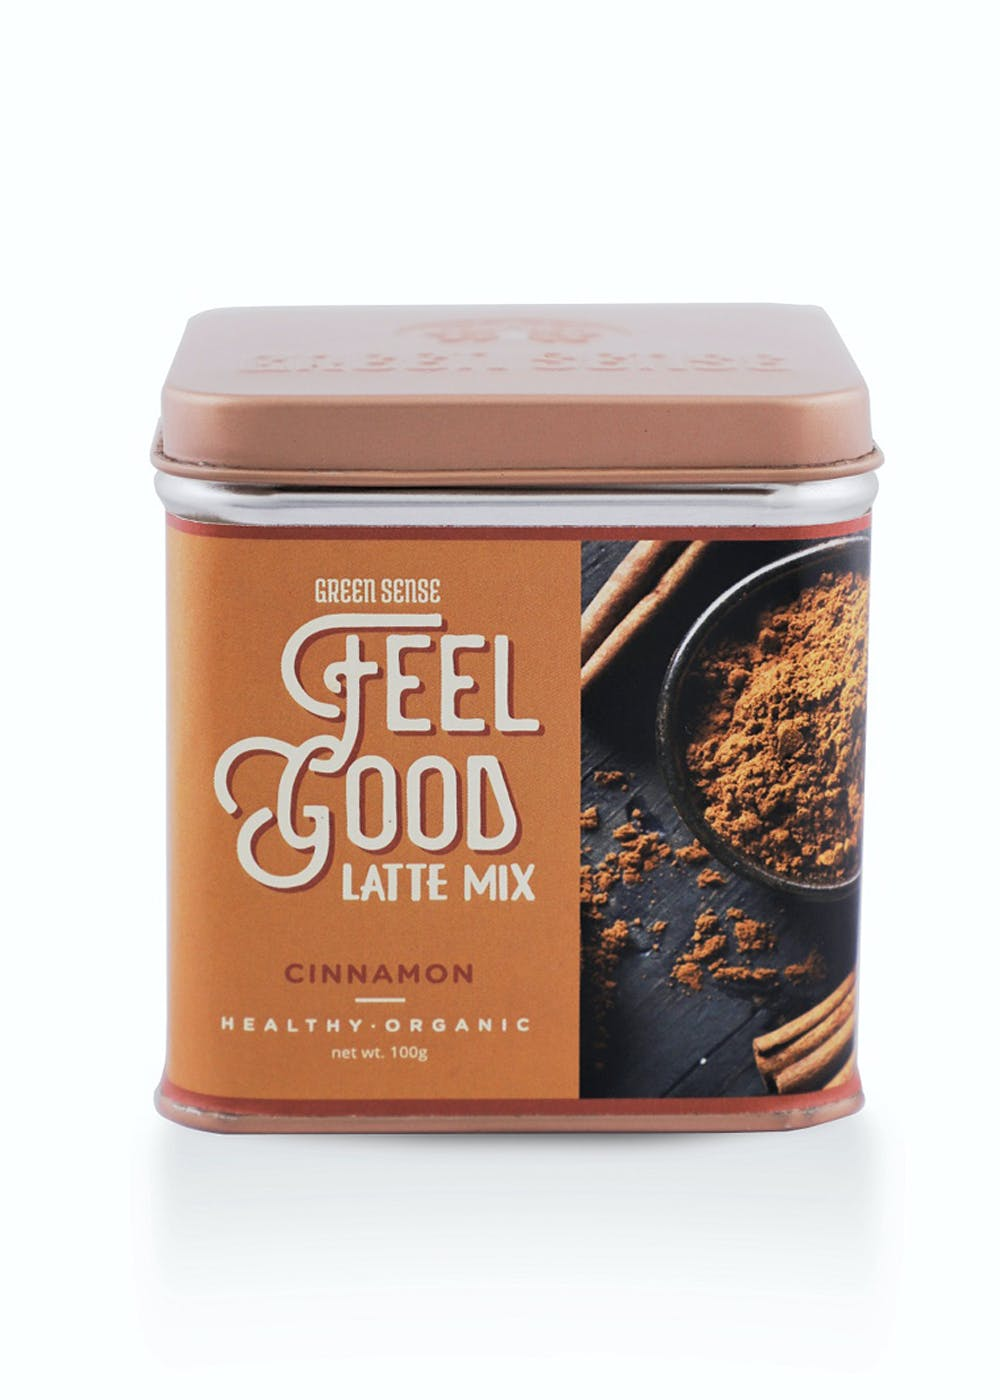 Feel Good Latte Mix - Cinnamon